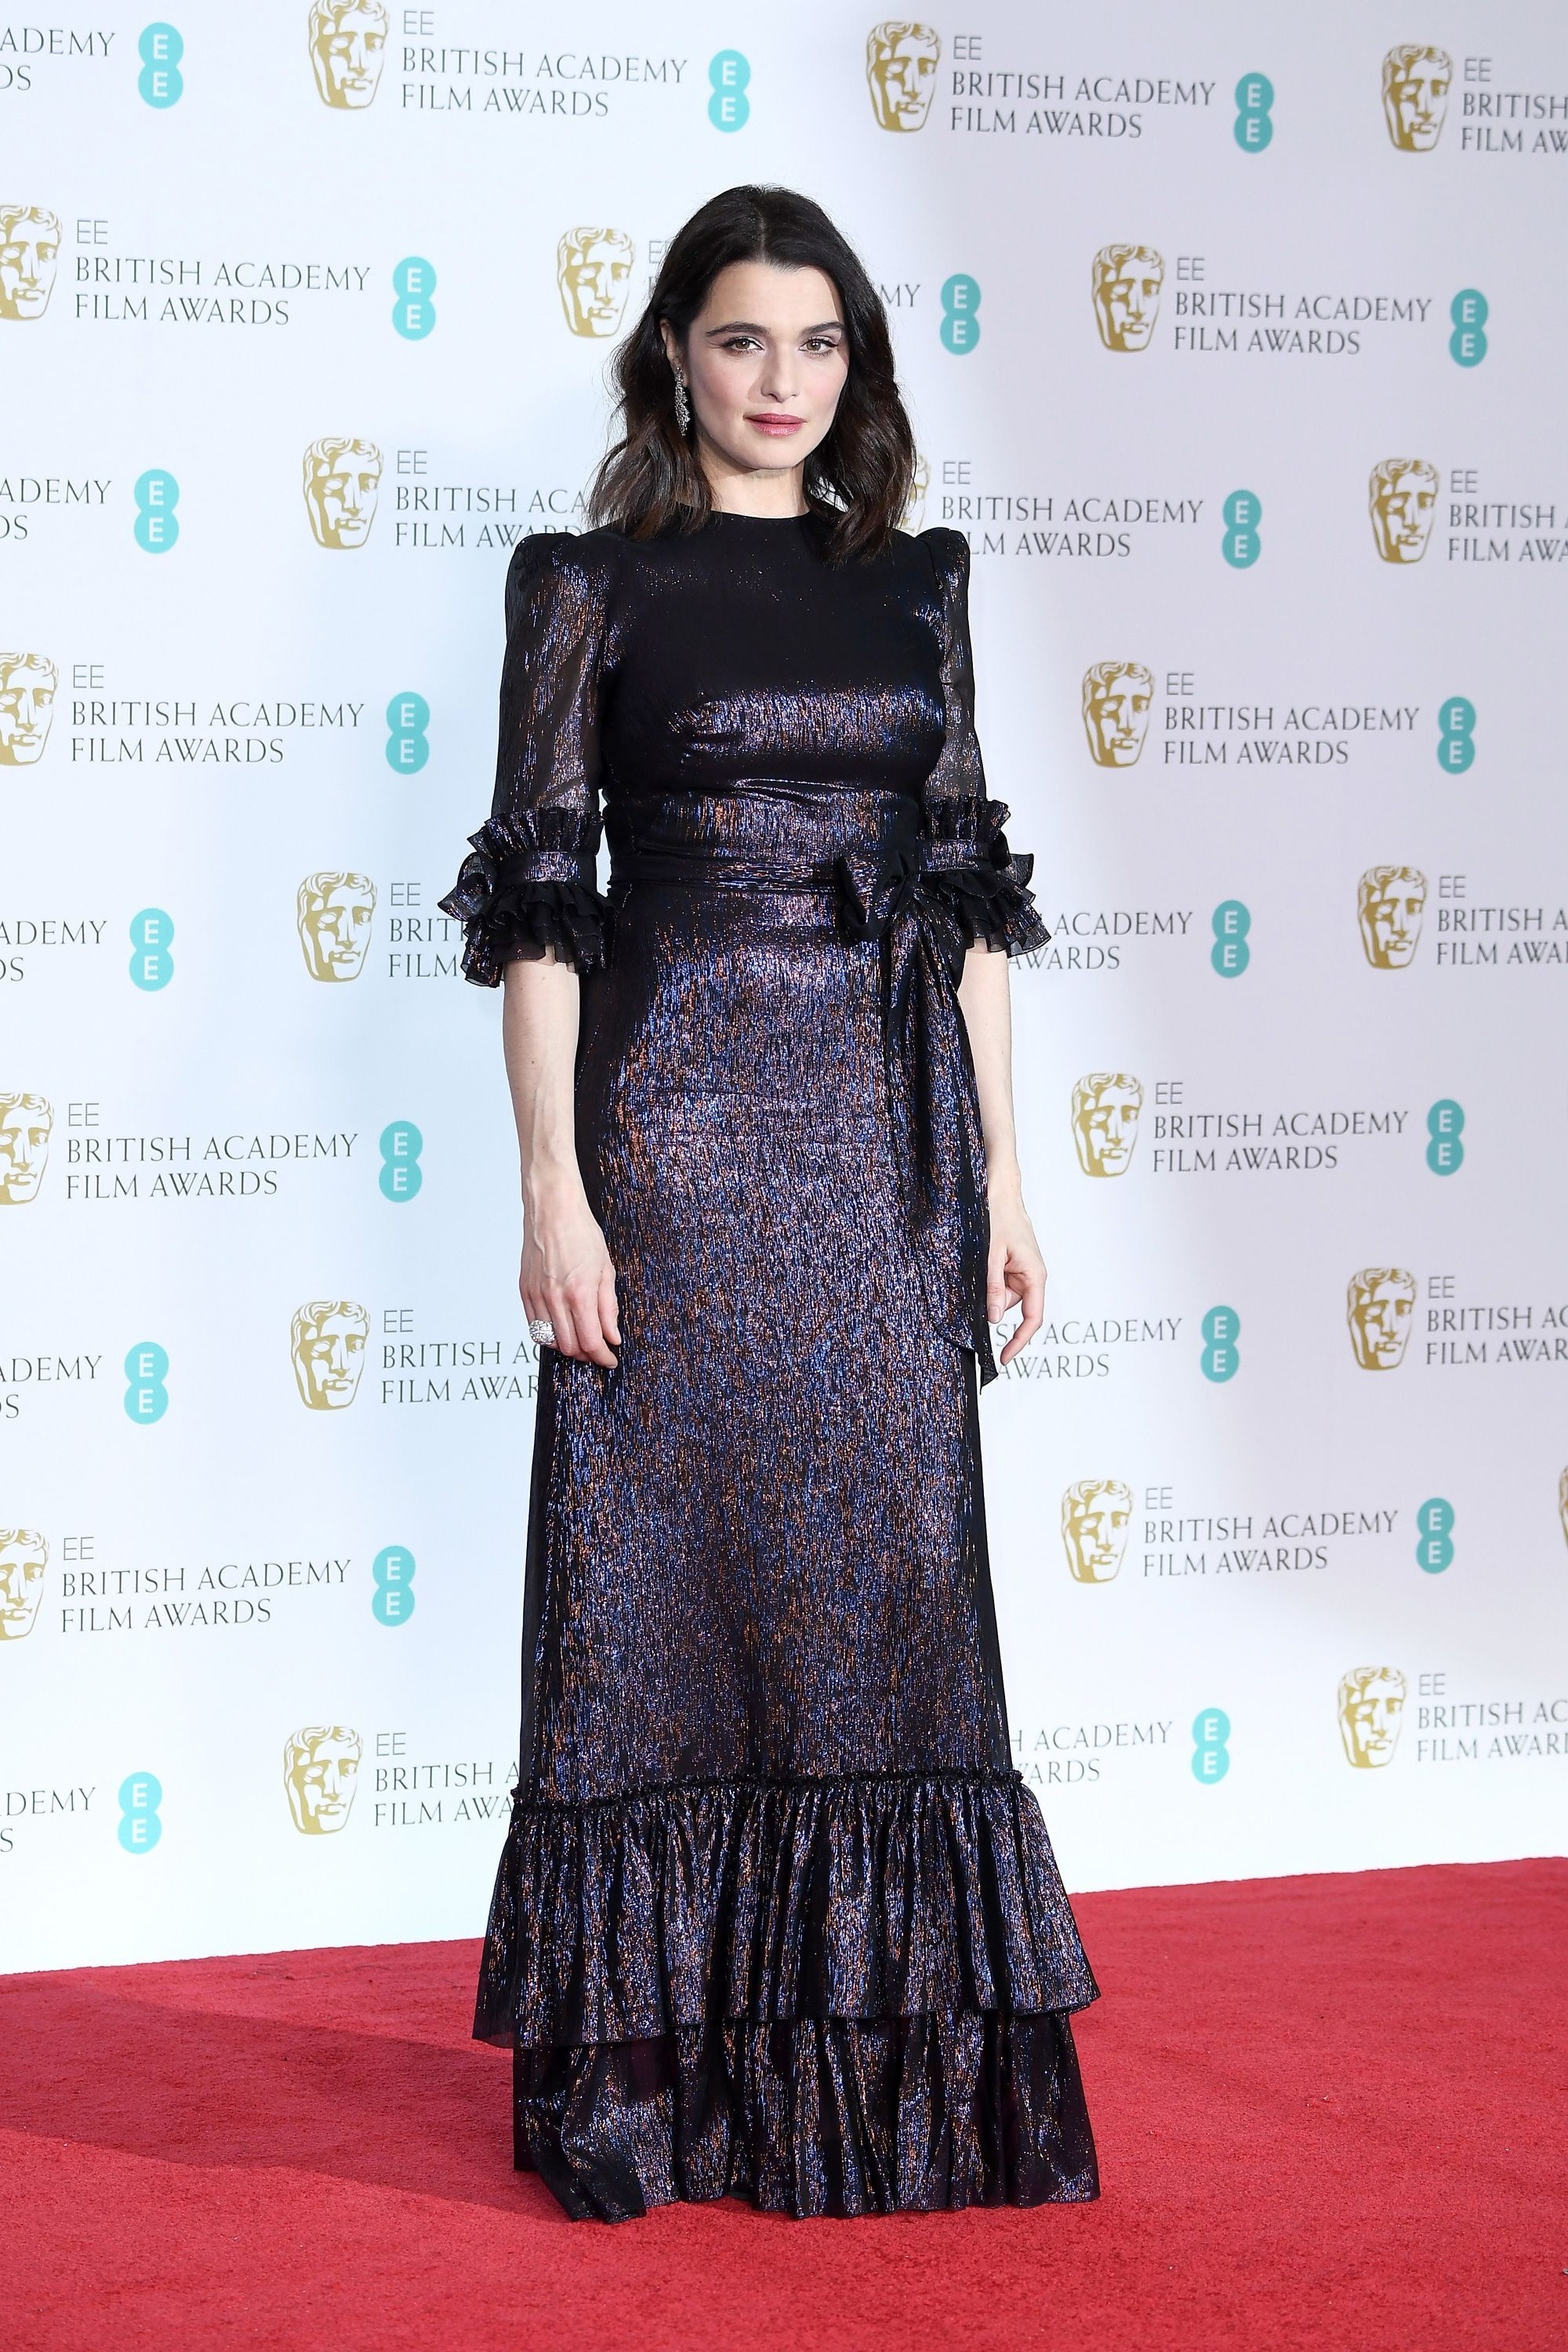 The Best Looks From The Baftas Red Carpet Tops Beautiful Brits